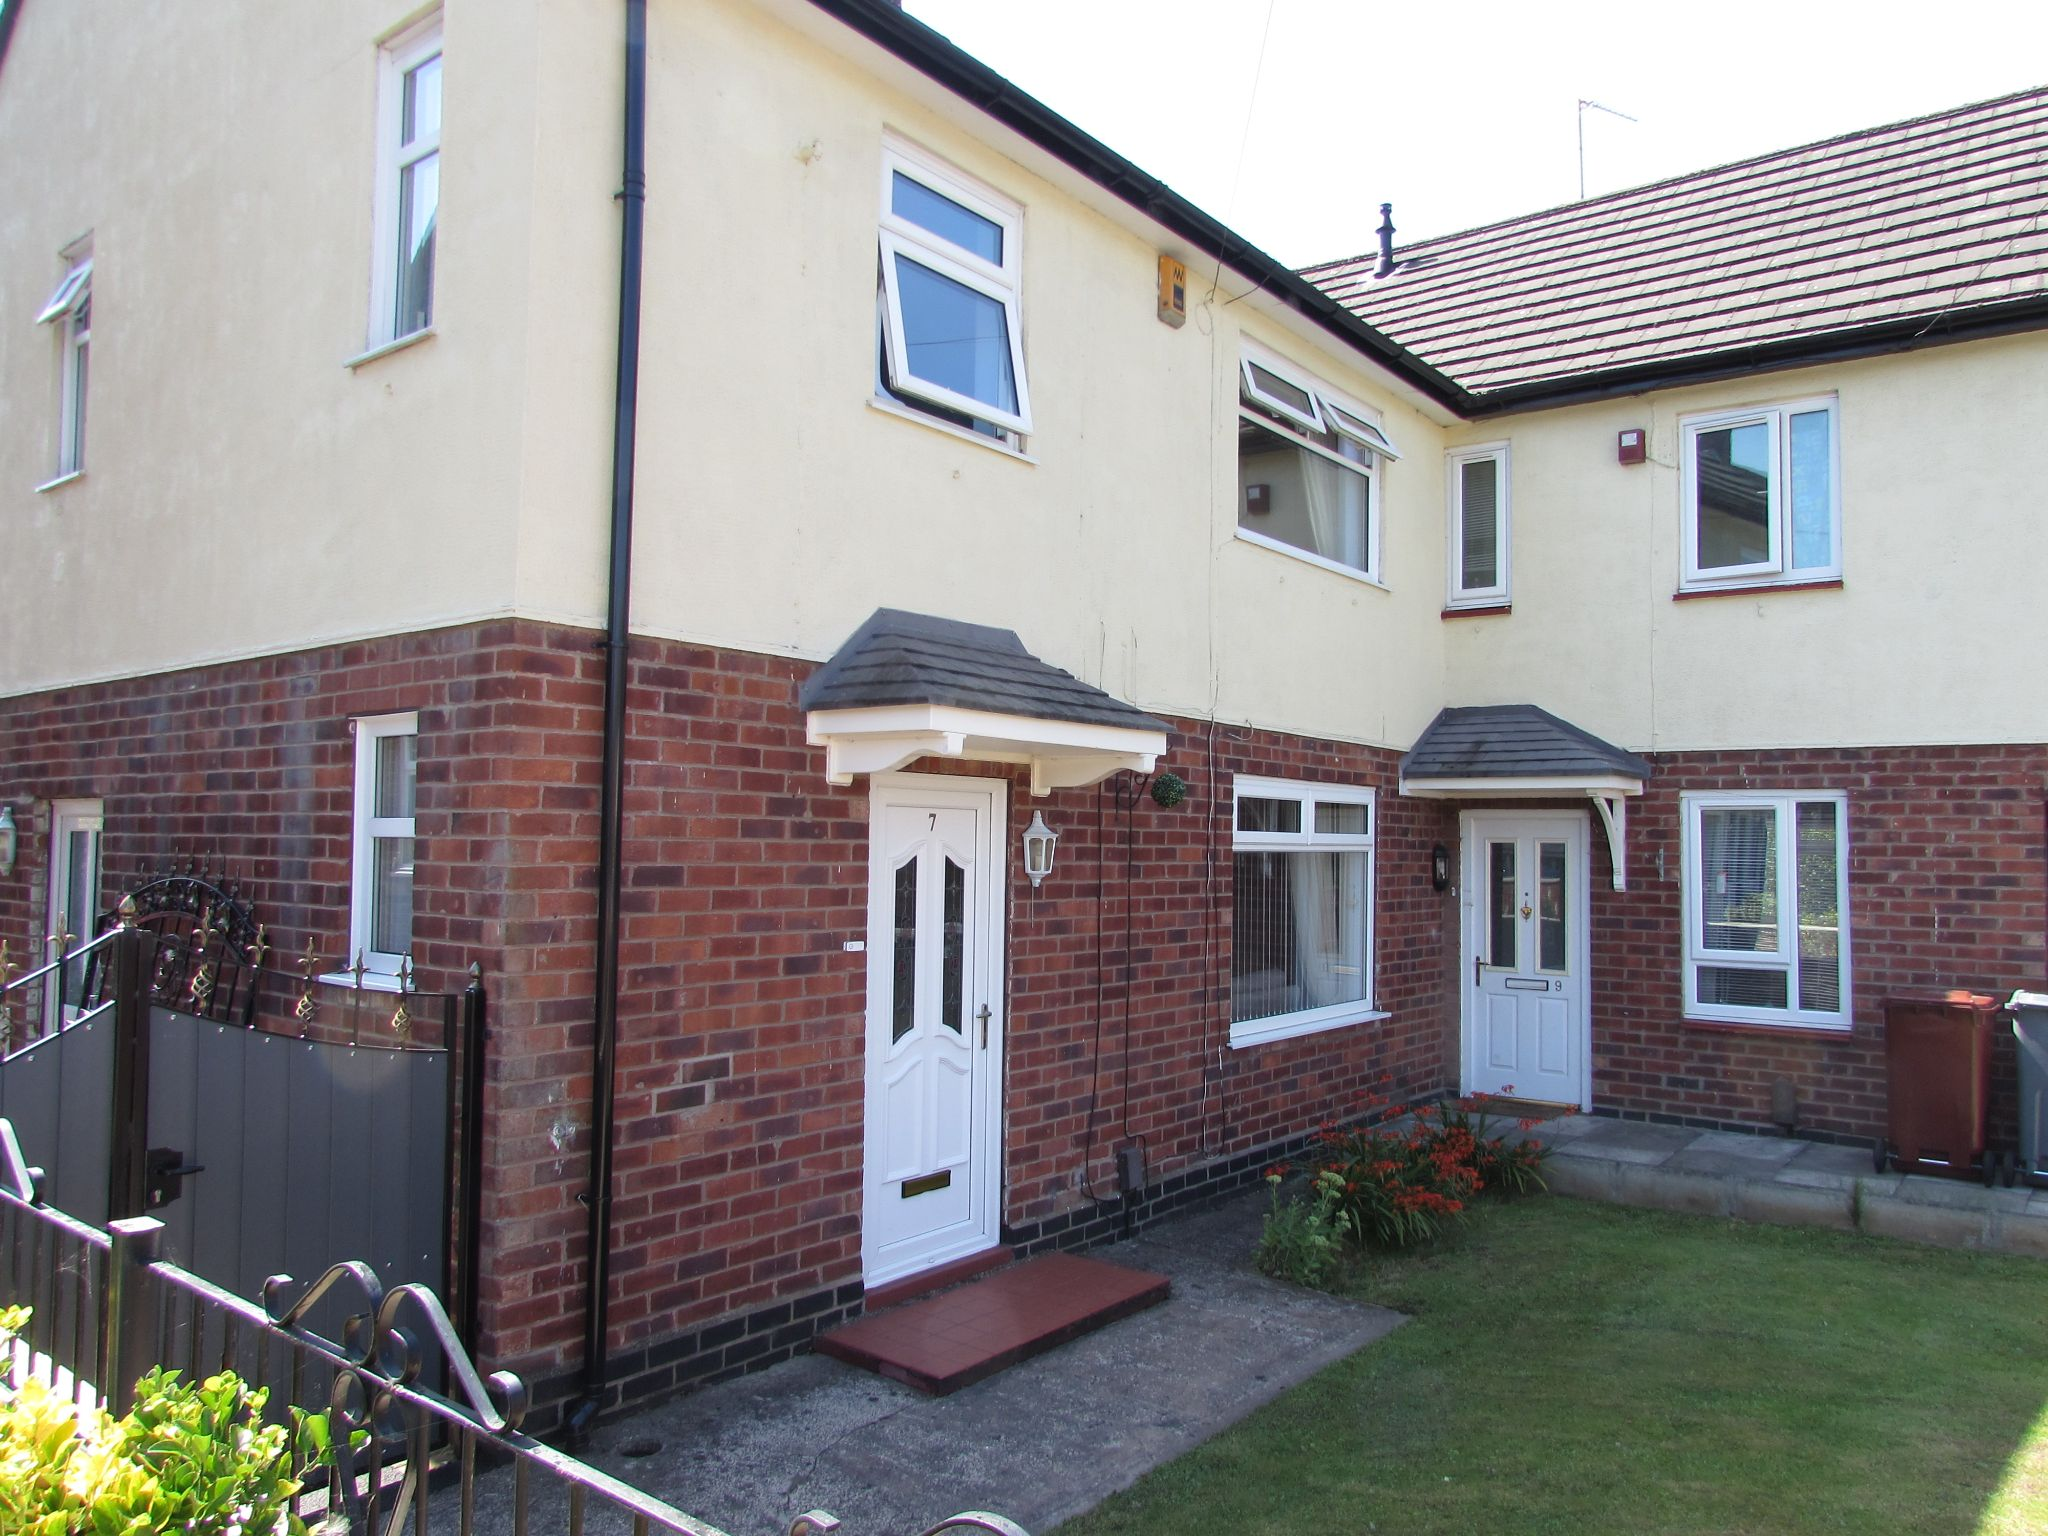 3 Bedroom End Terraced House For Sale - Photograph 25